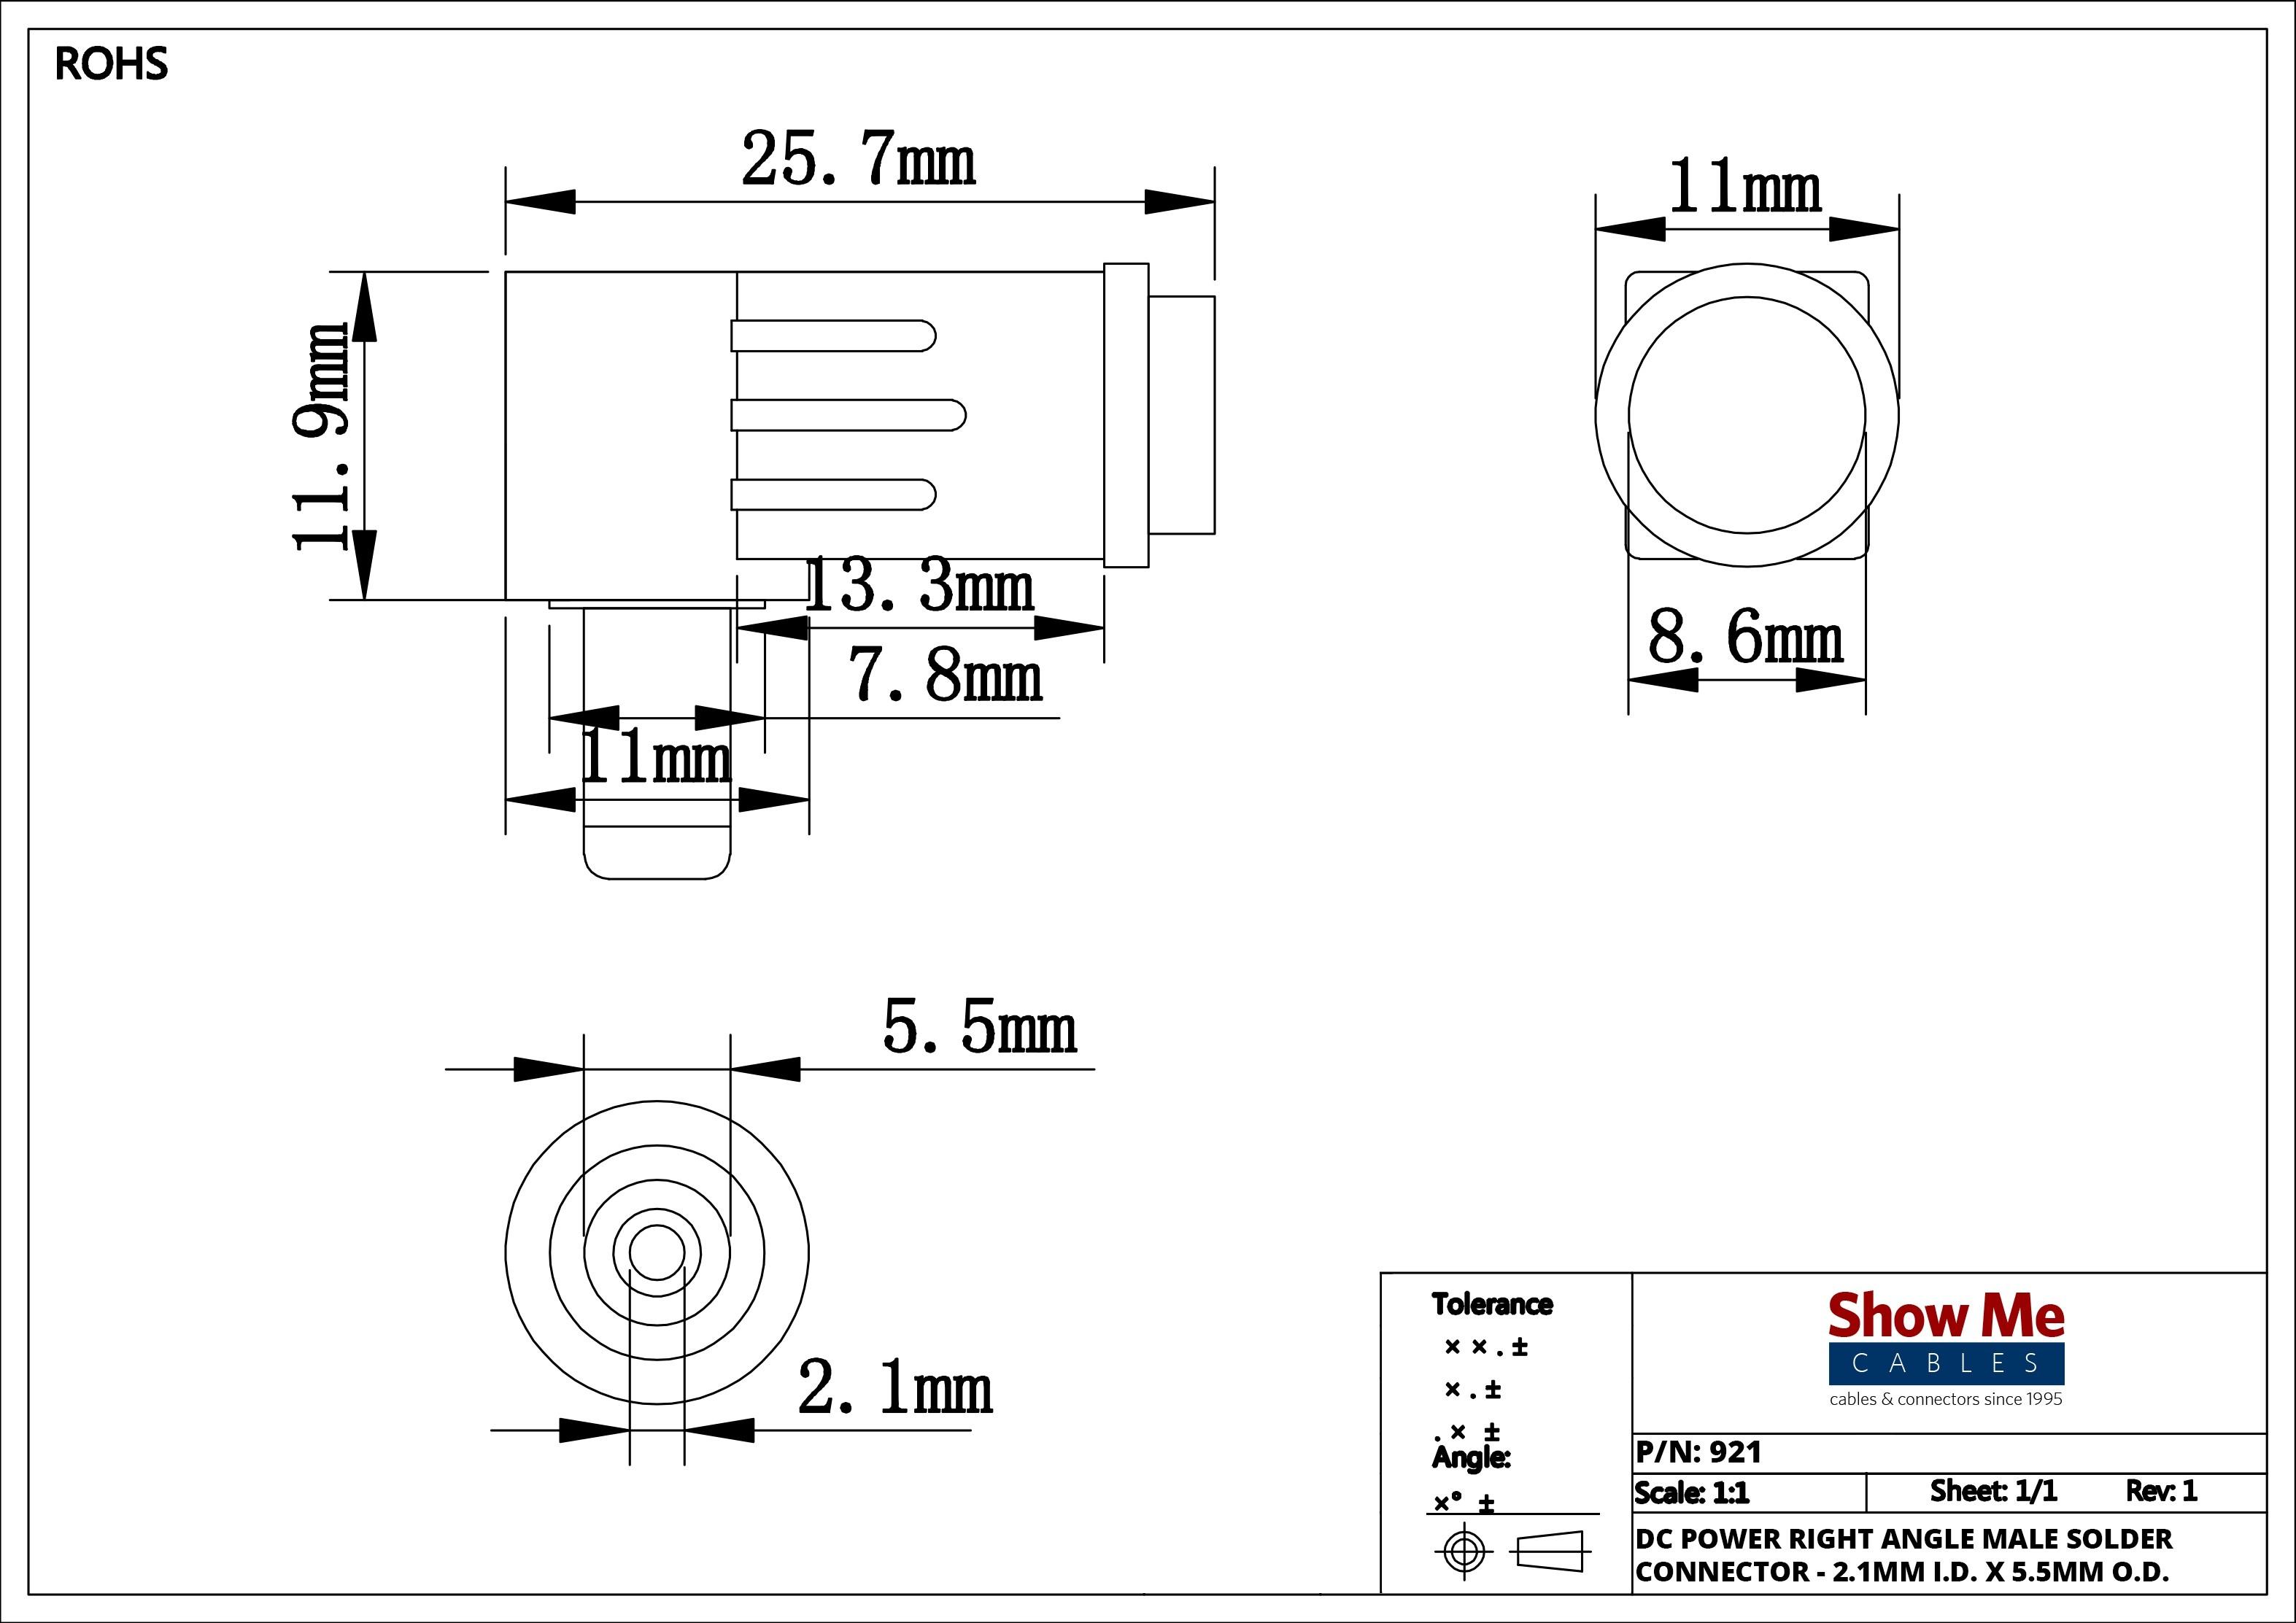 homeline load center hom6 12l100 wiring diagram Download-Homeline Load Center Hom6 12l100 Wiring Diagram Home Speaker Wiring Diagram Collection 3 5 Mm 11-r